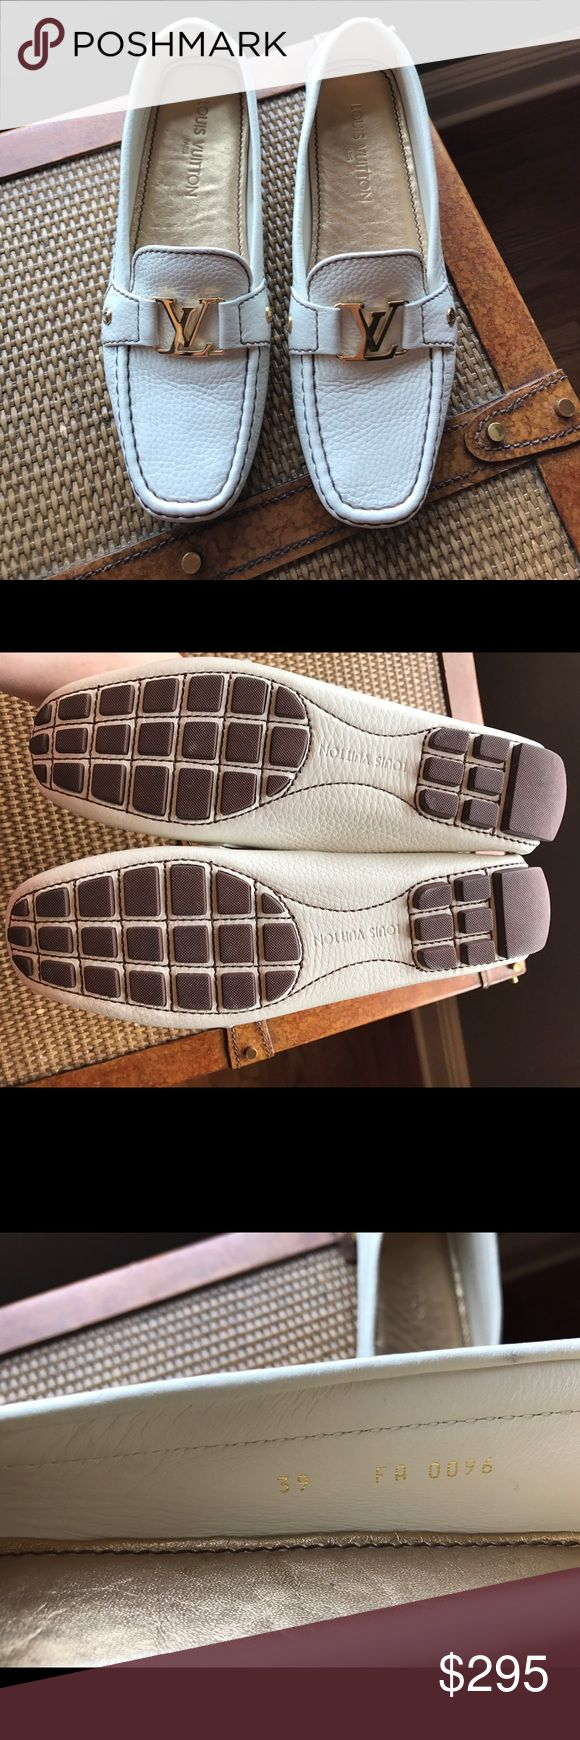 Louis Vuitton Loafers AUTHENTIC White leather LV loafers with brown stitching and gold hardware. Never worn. No box or bag. Louis Vuitton Shoes Flats & Loafers